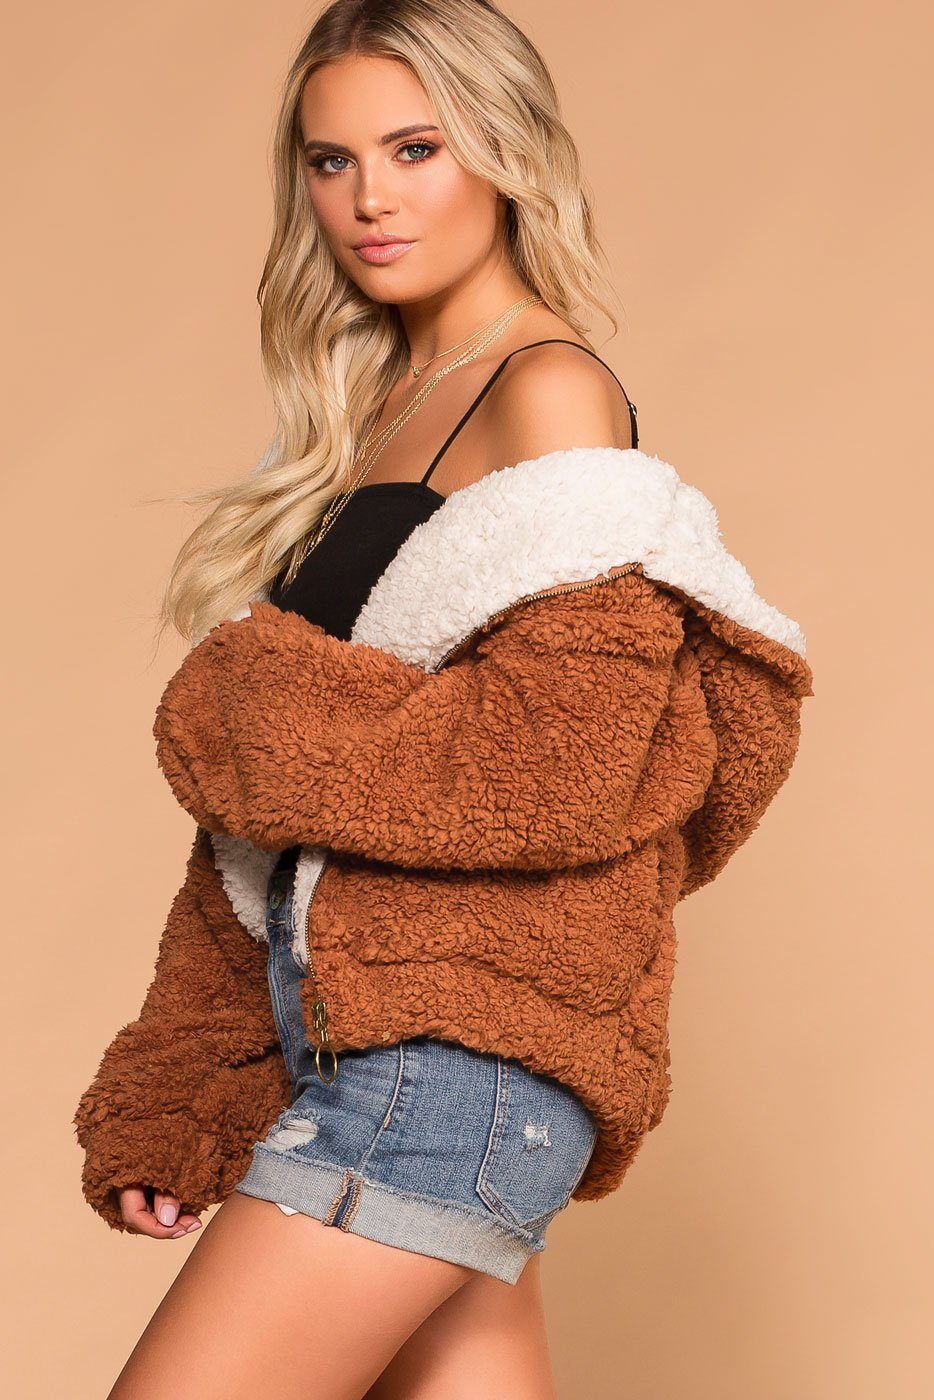 Snuggle Up Rust Bomber Jacket | Shop Priceless